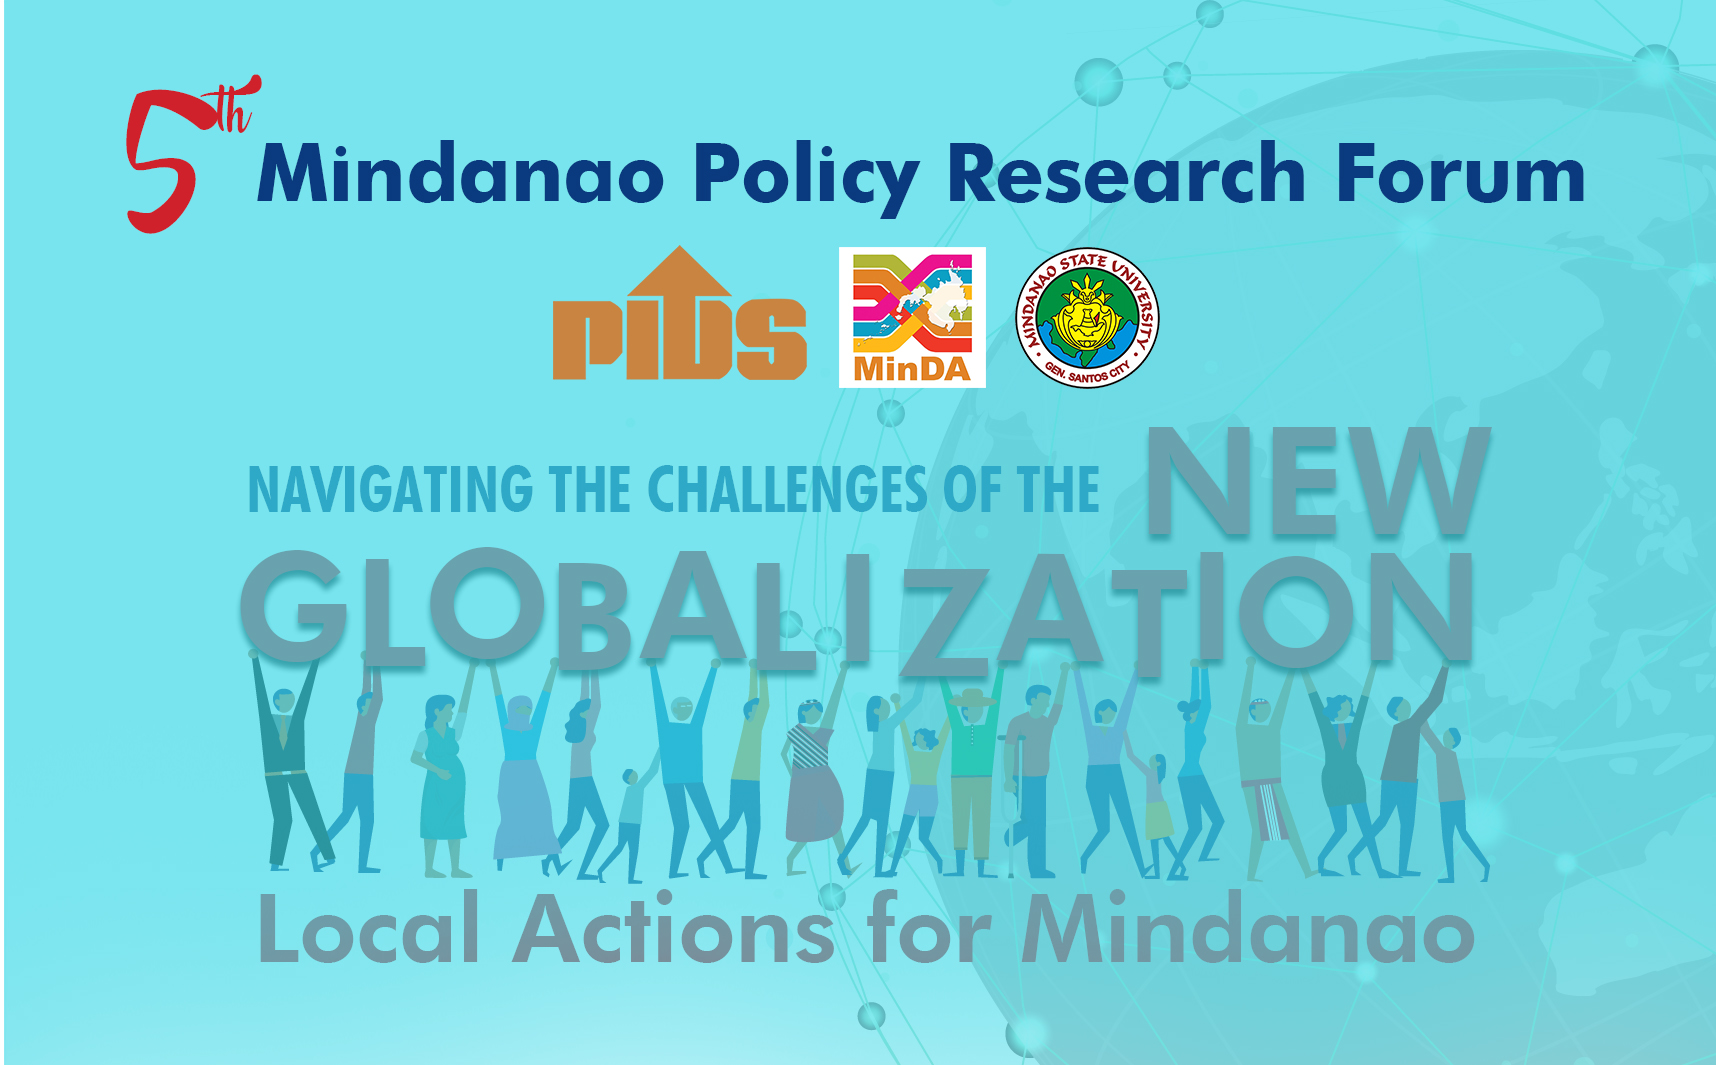 5th Mindanao Policy Research Forum